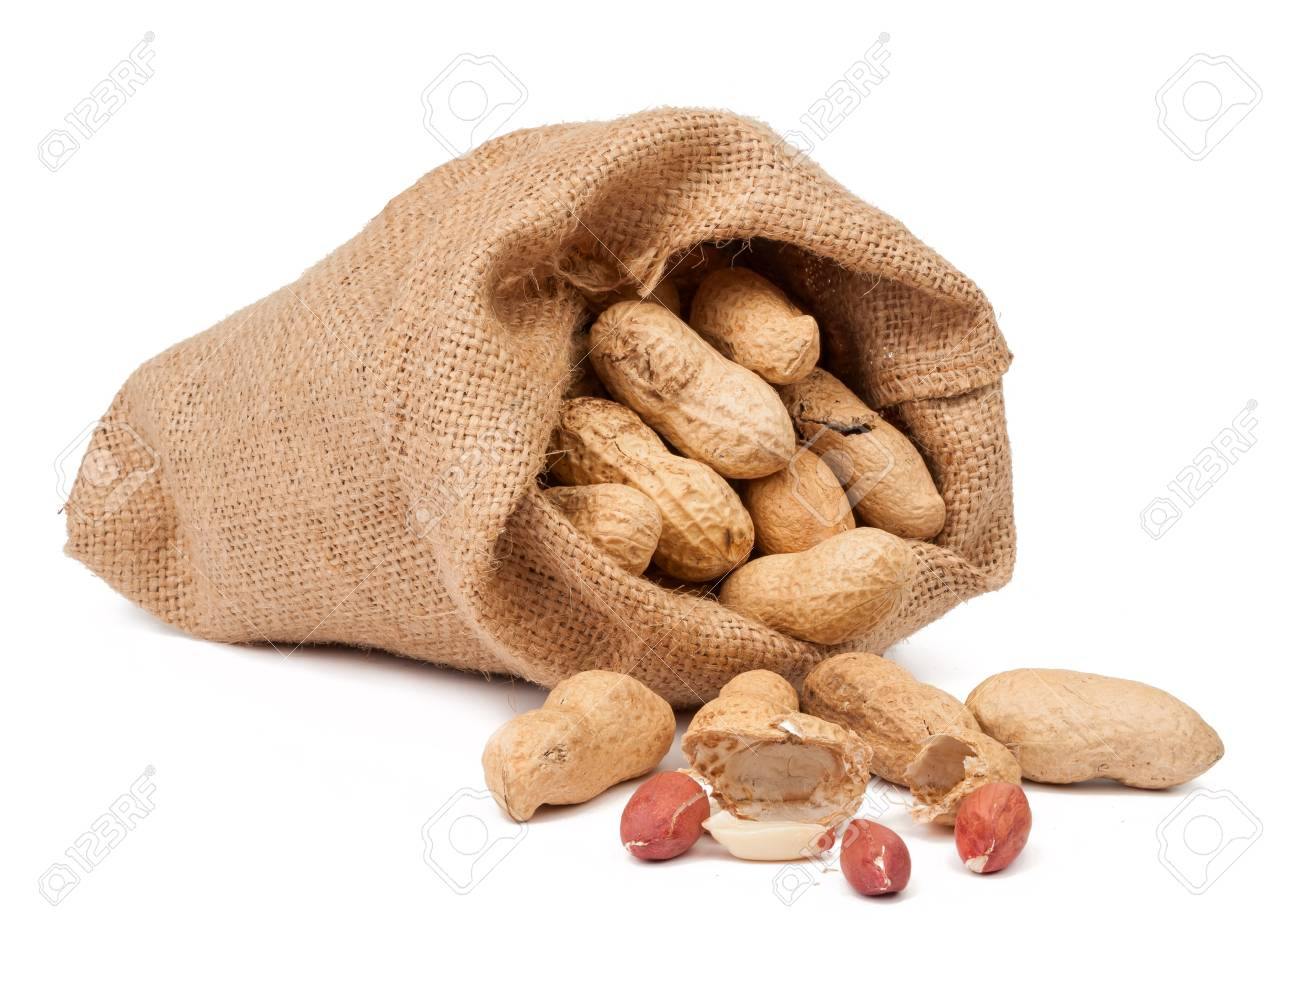 33689925-spilled-bag-of-peanuts-isolated